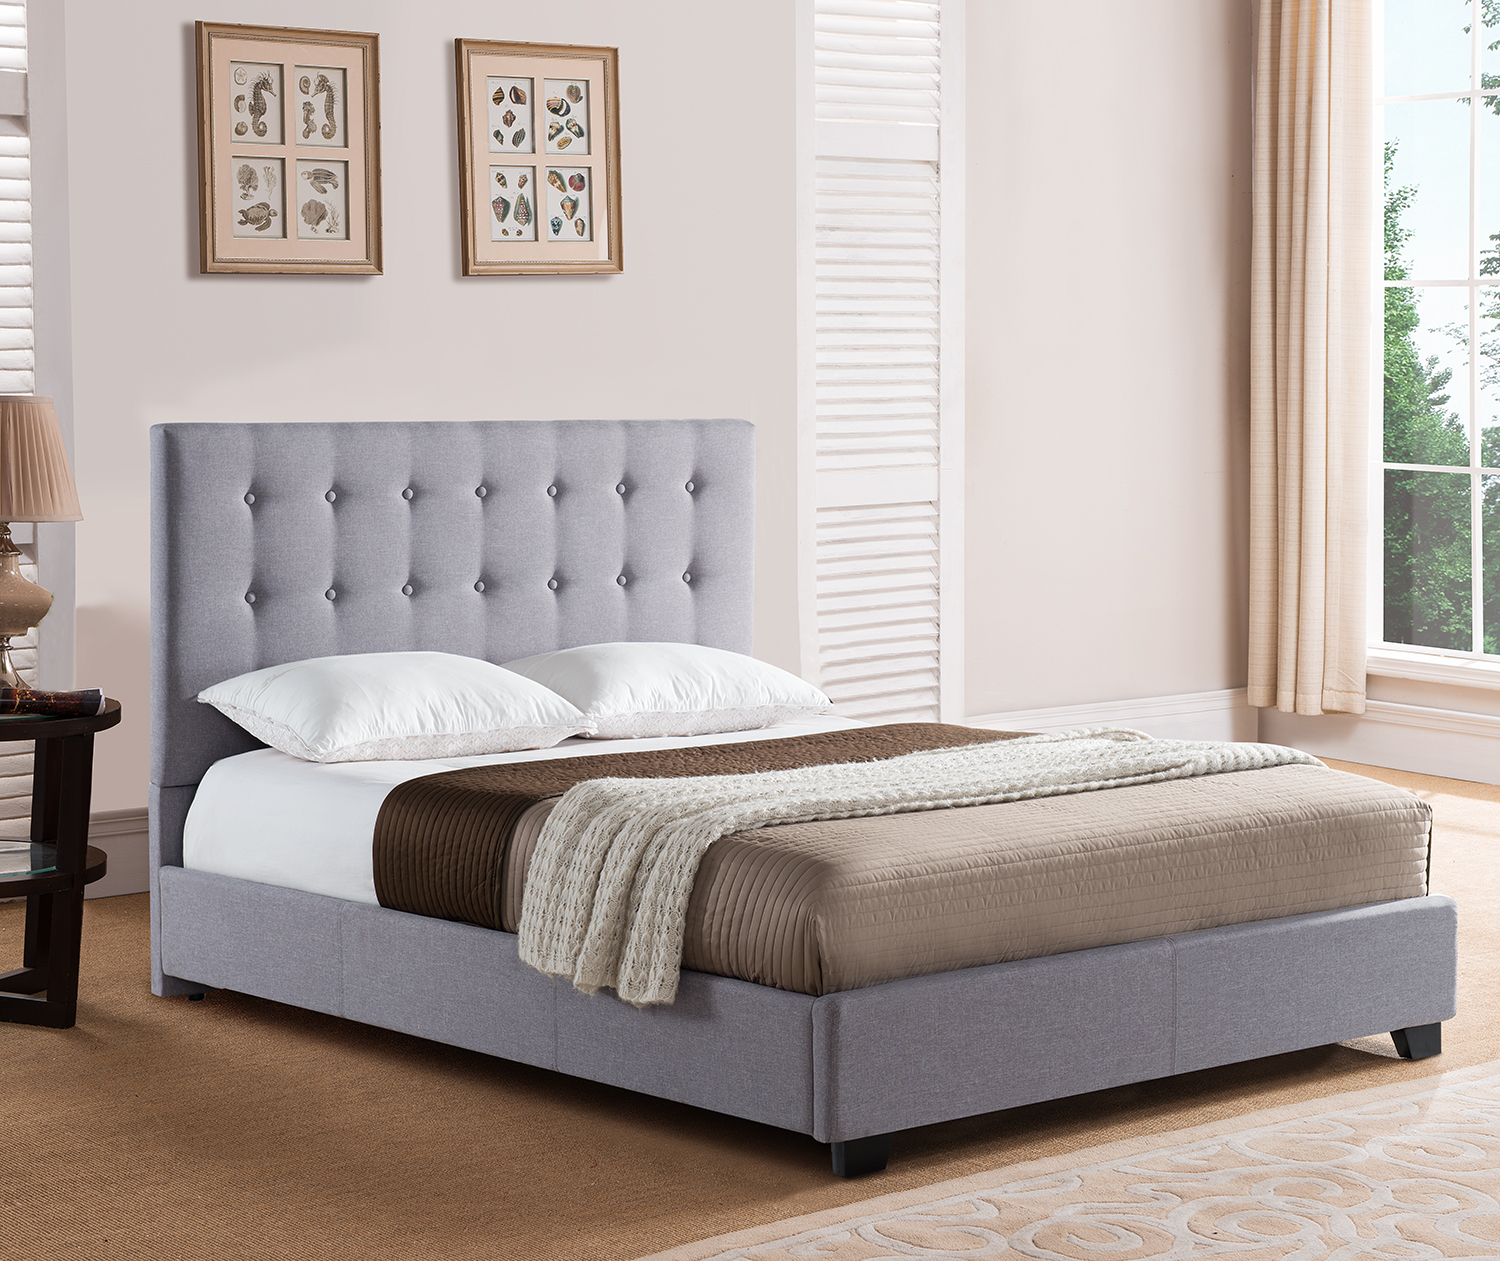 Mantua Str66mg Stratford Platform Bed King Grey Str66mg Park Home